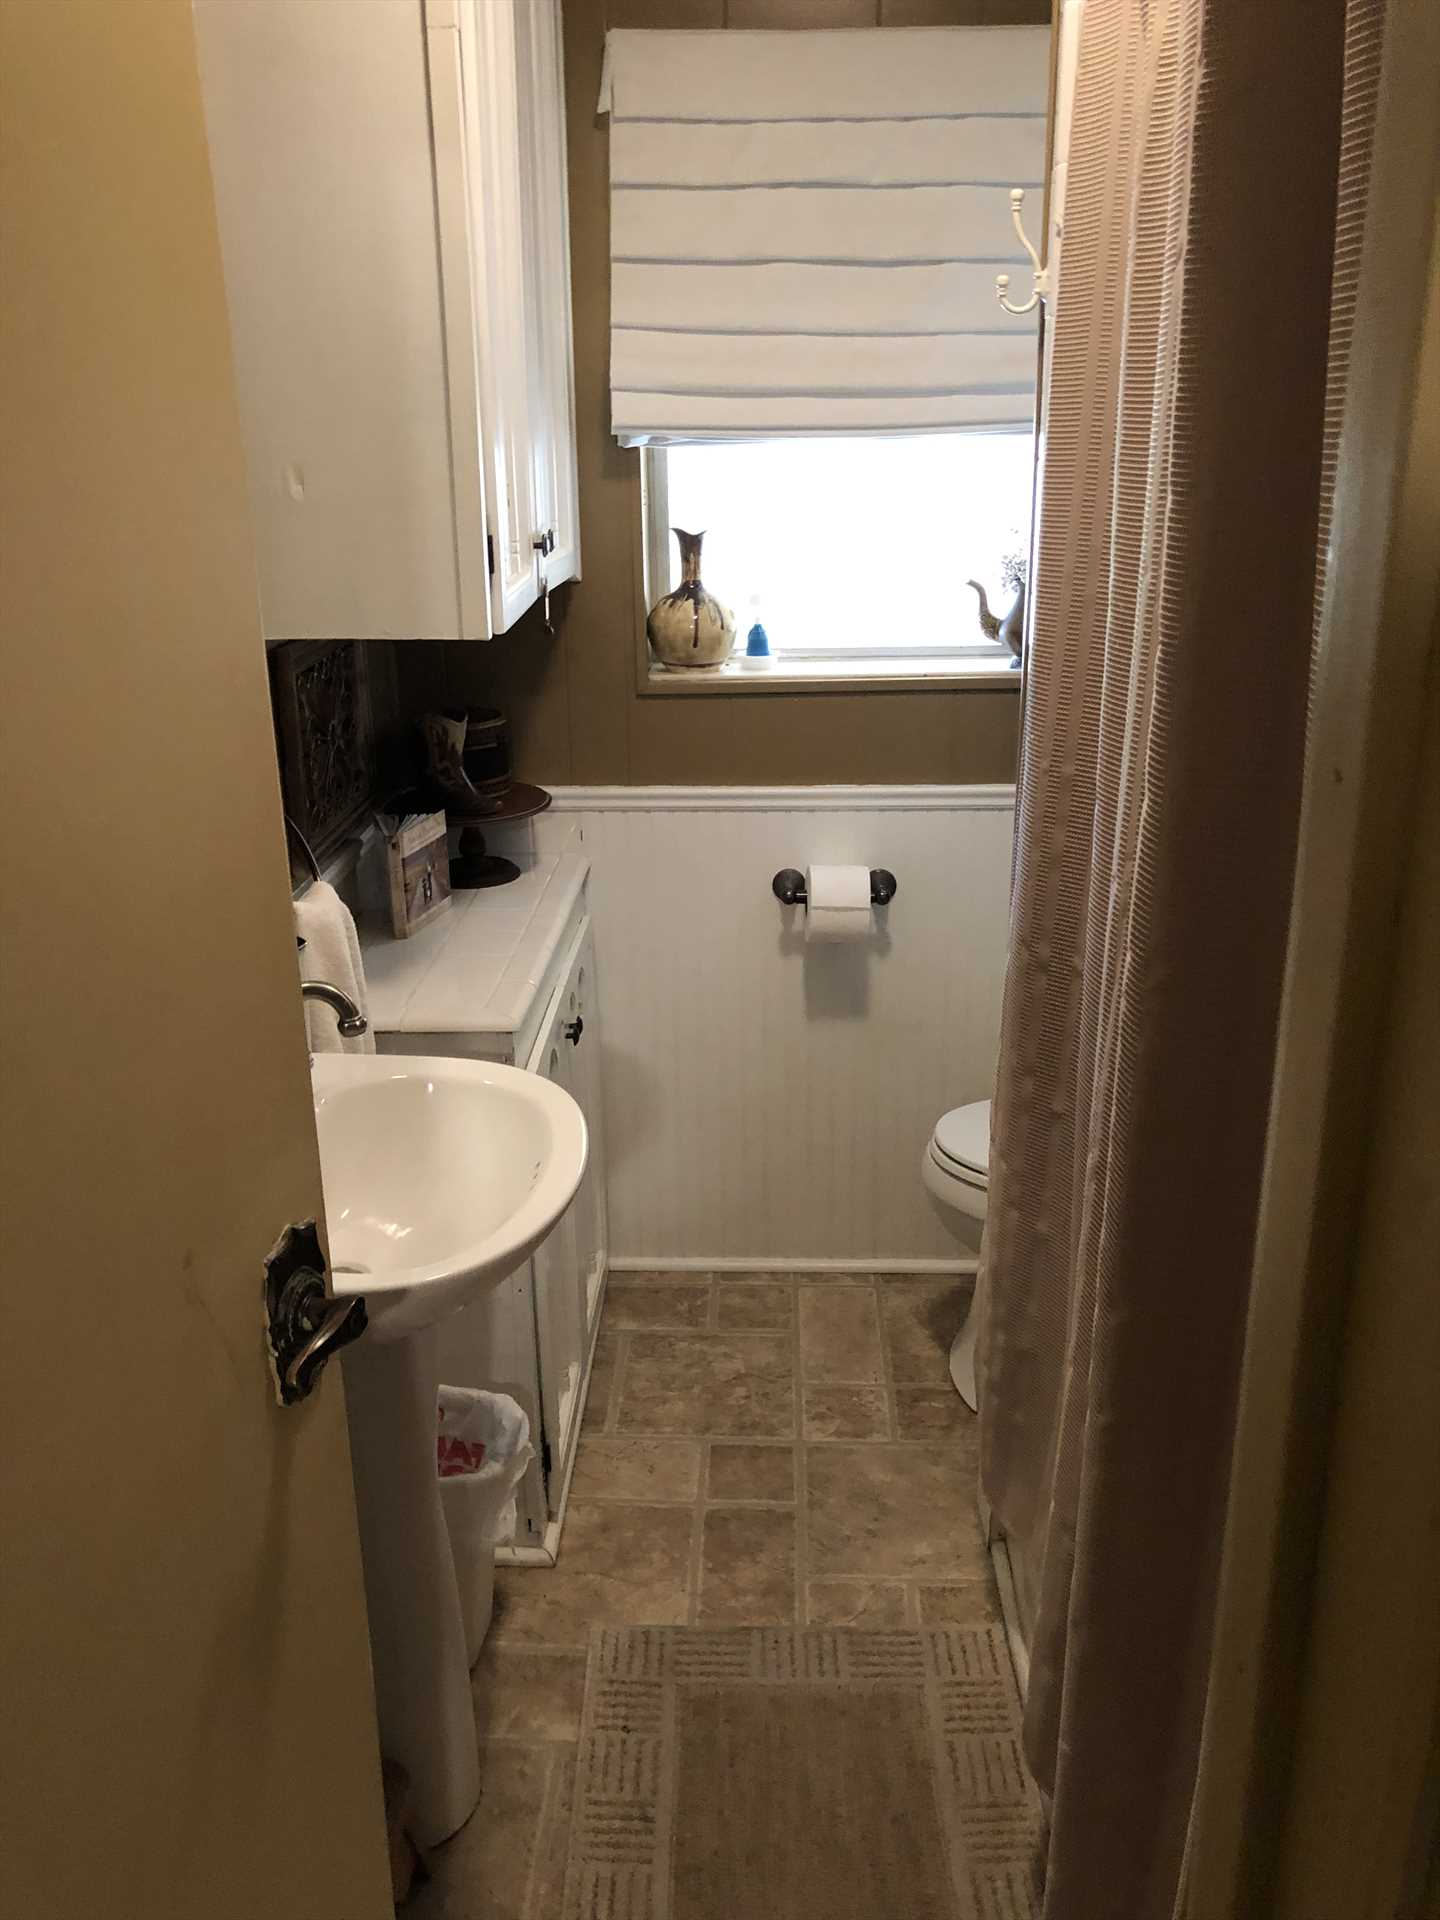 The second full bath is kept immaculately clean, and features not only a shower/tub combo, but clean linens for all.